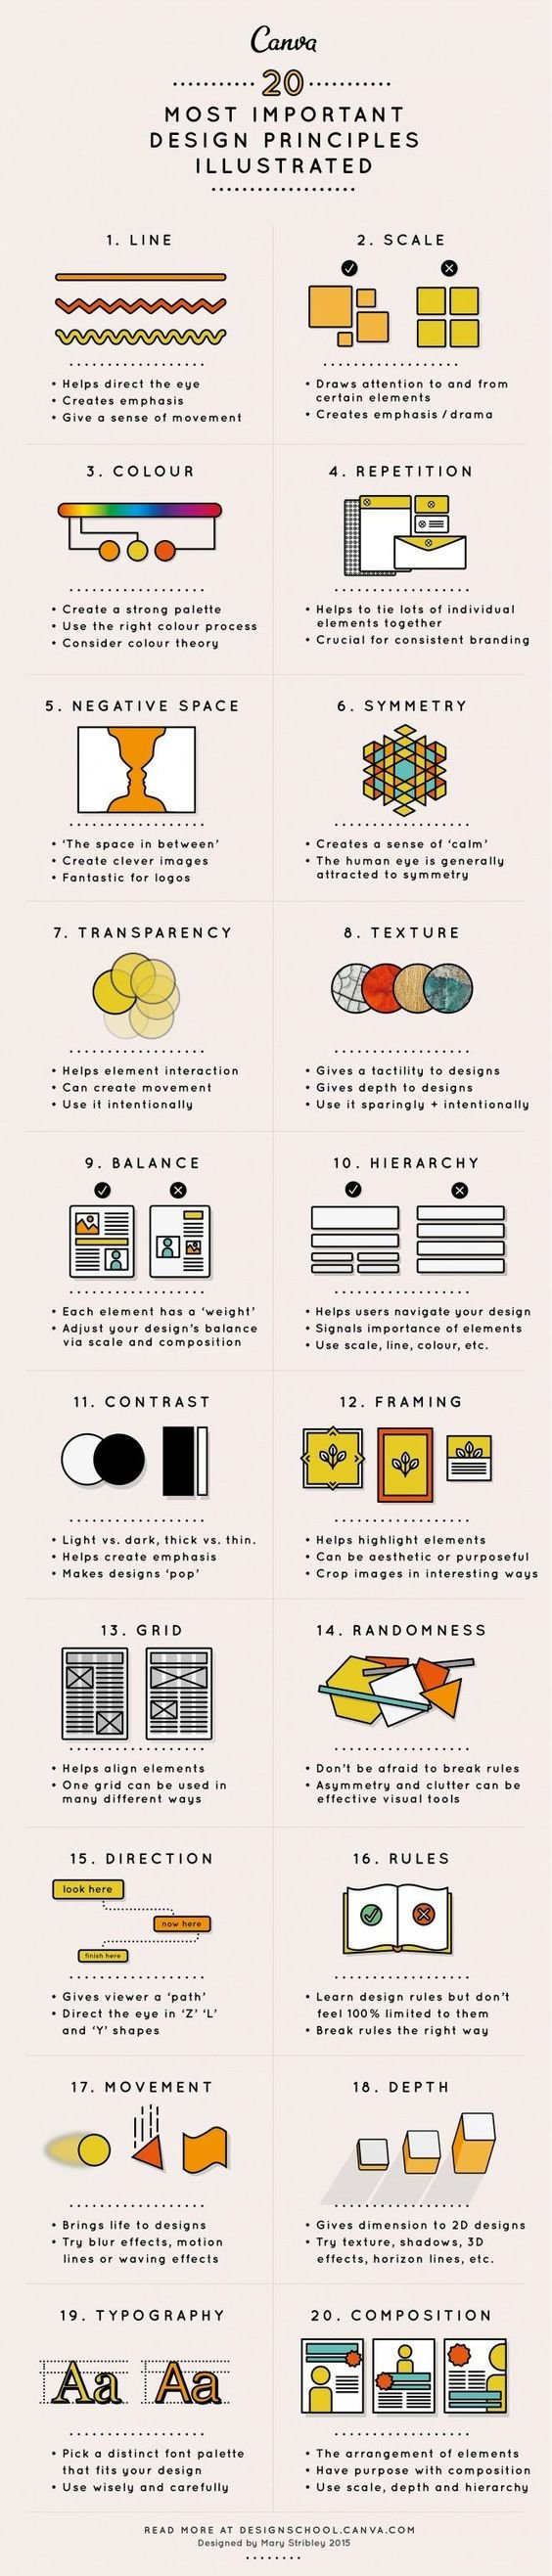 twenty most important #Design Principles illustrated #Infographic